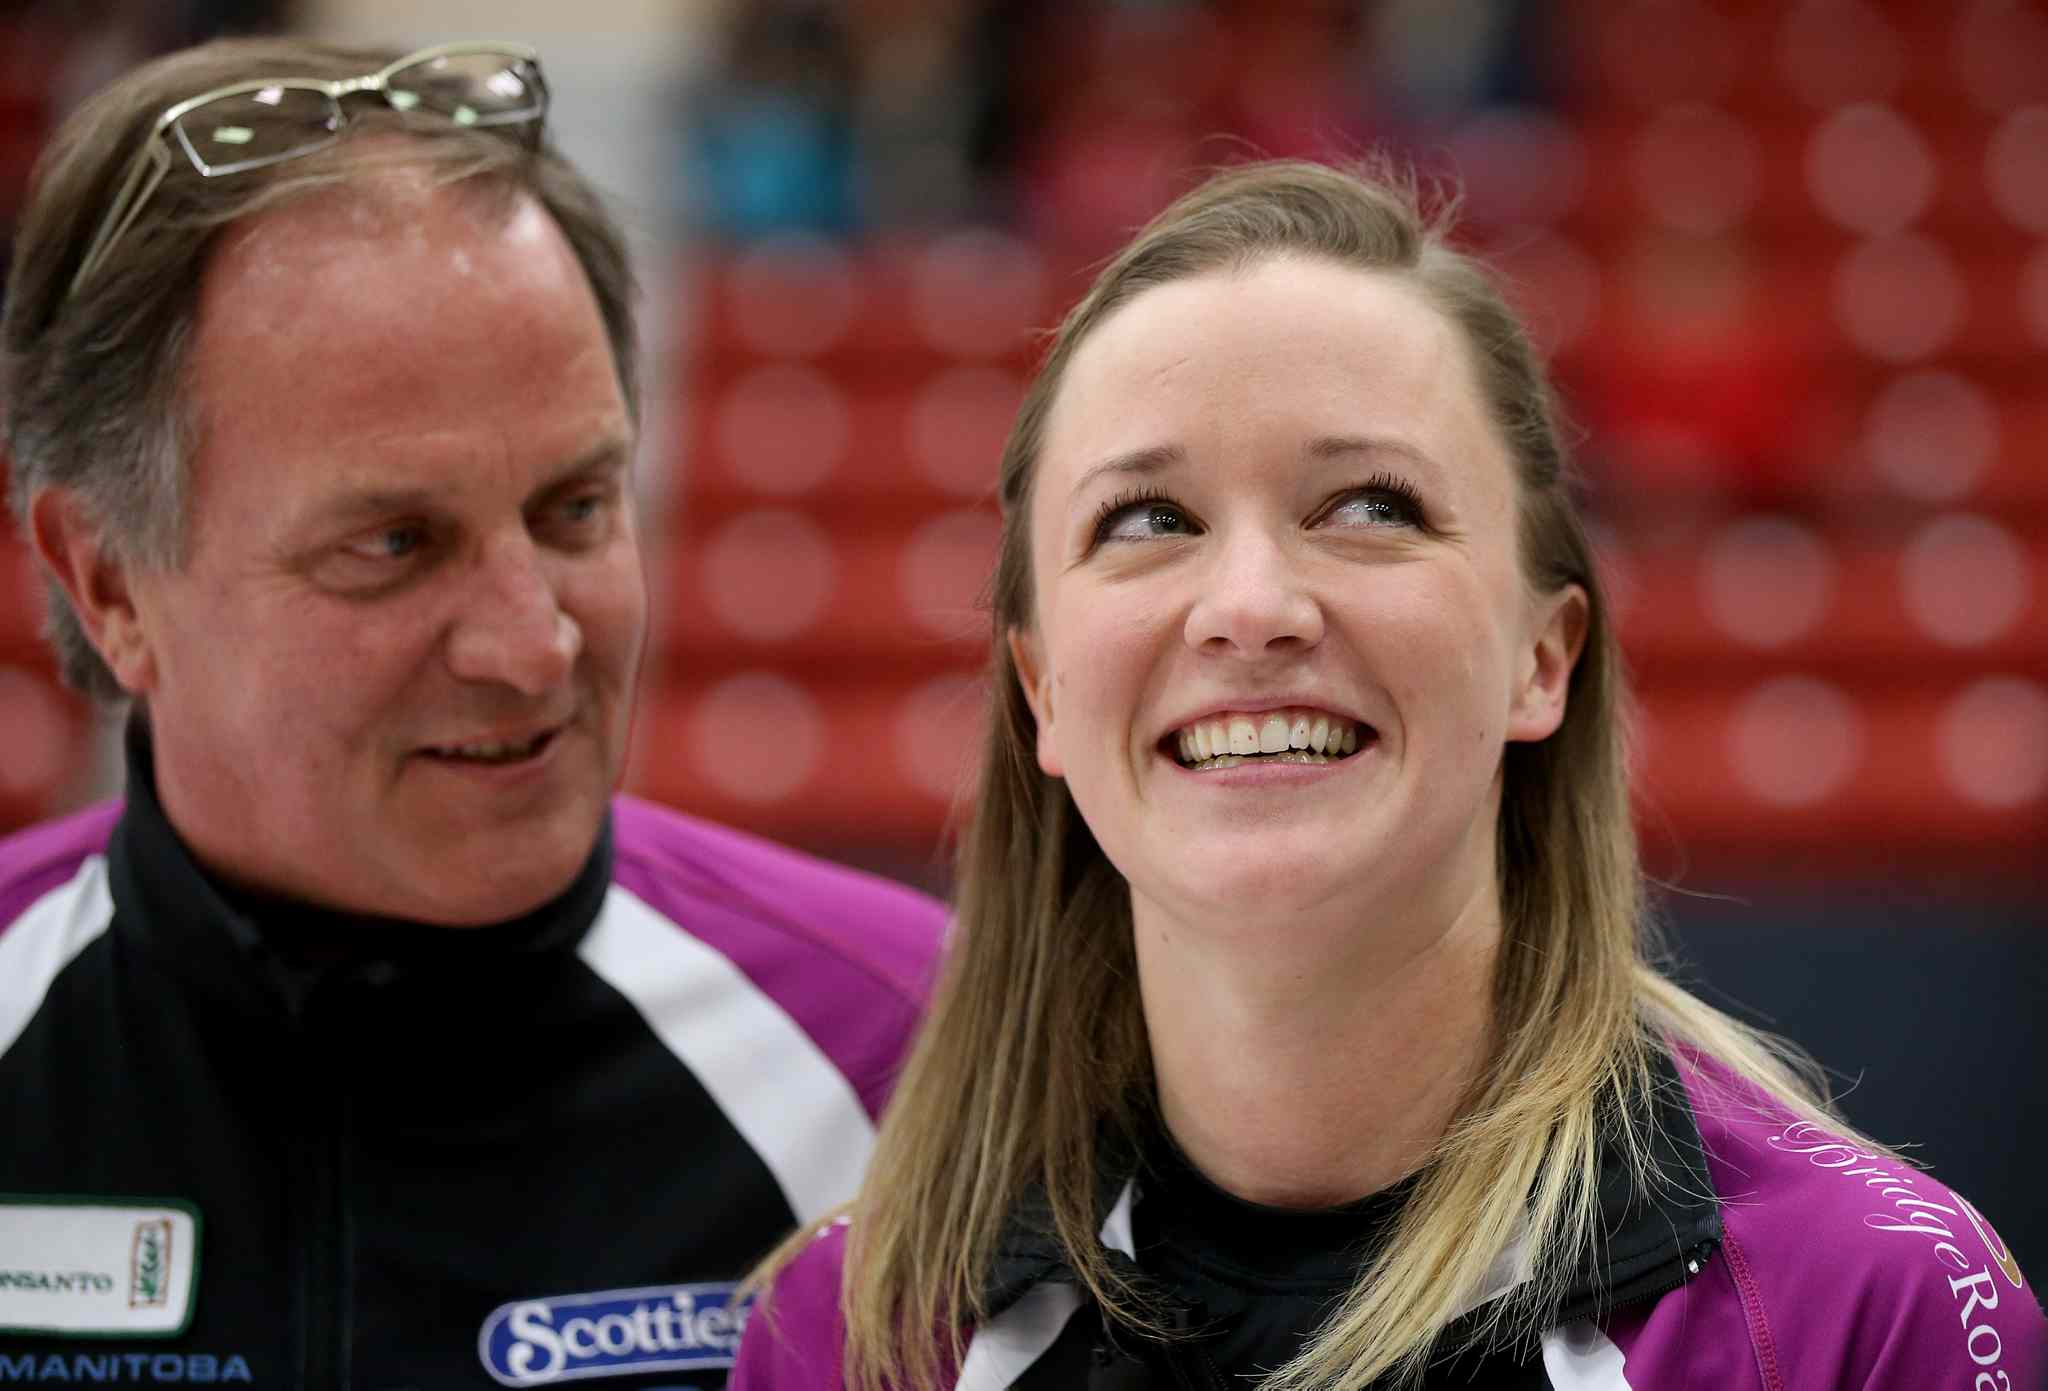 As her father and coach, Dan Carey looks on, Chelsea Carey smiles to the crowd. (TREVOR HAGAN/WINNIPEG FREE PRESS)